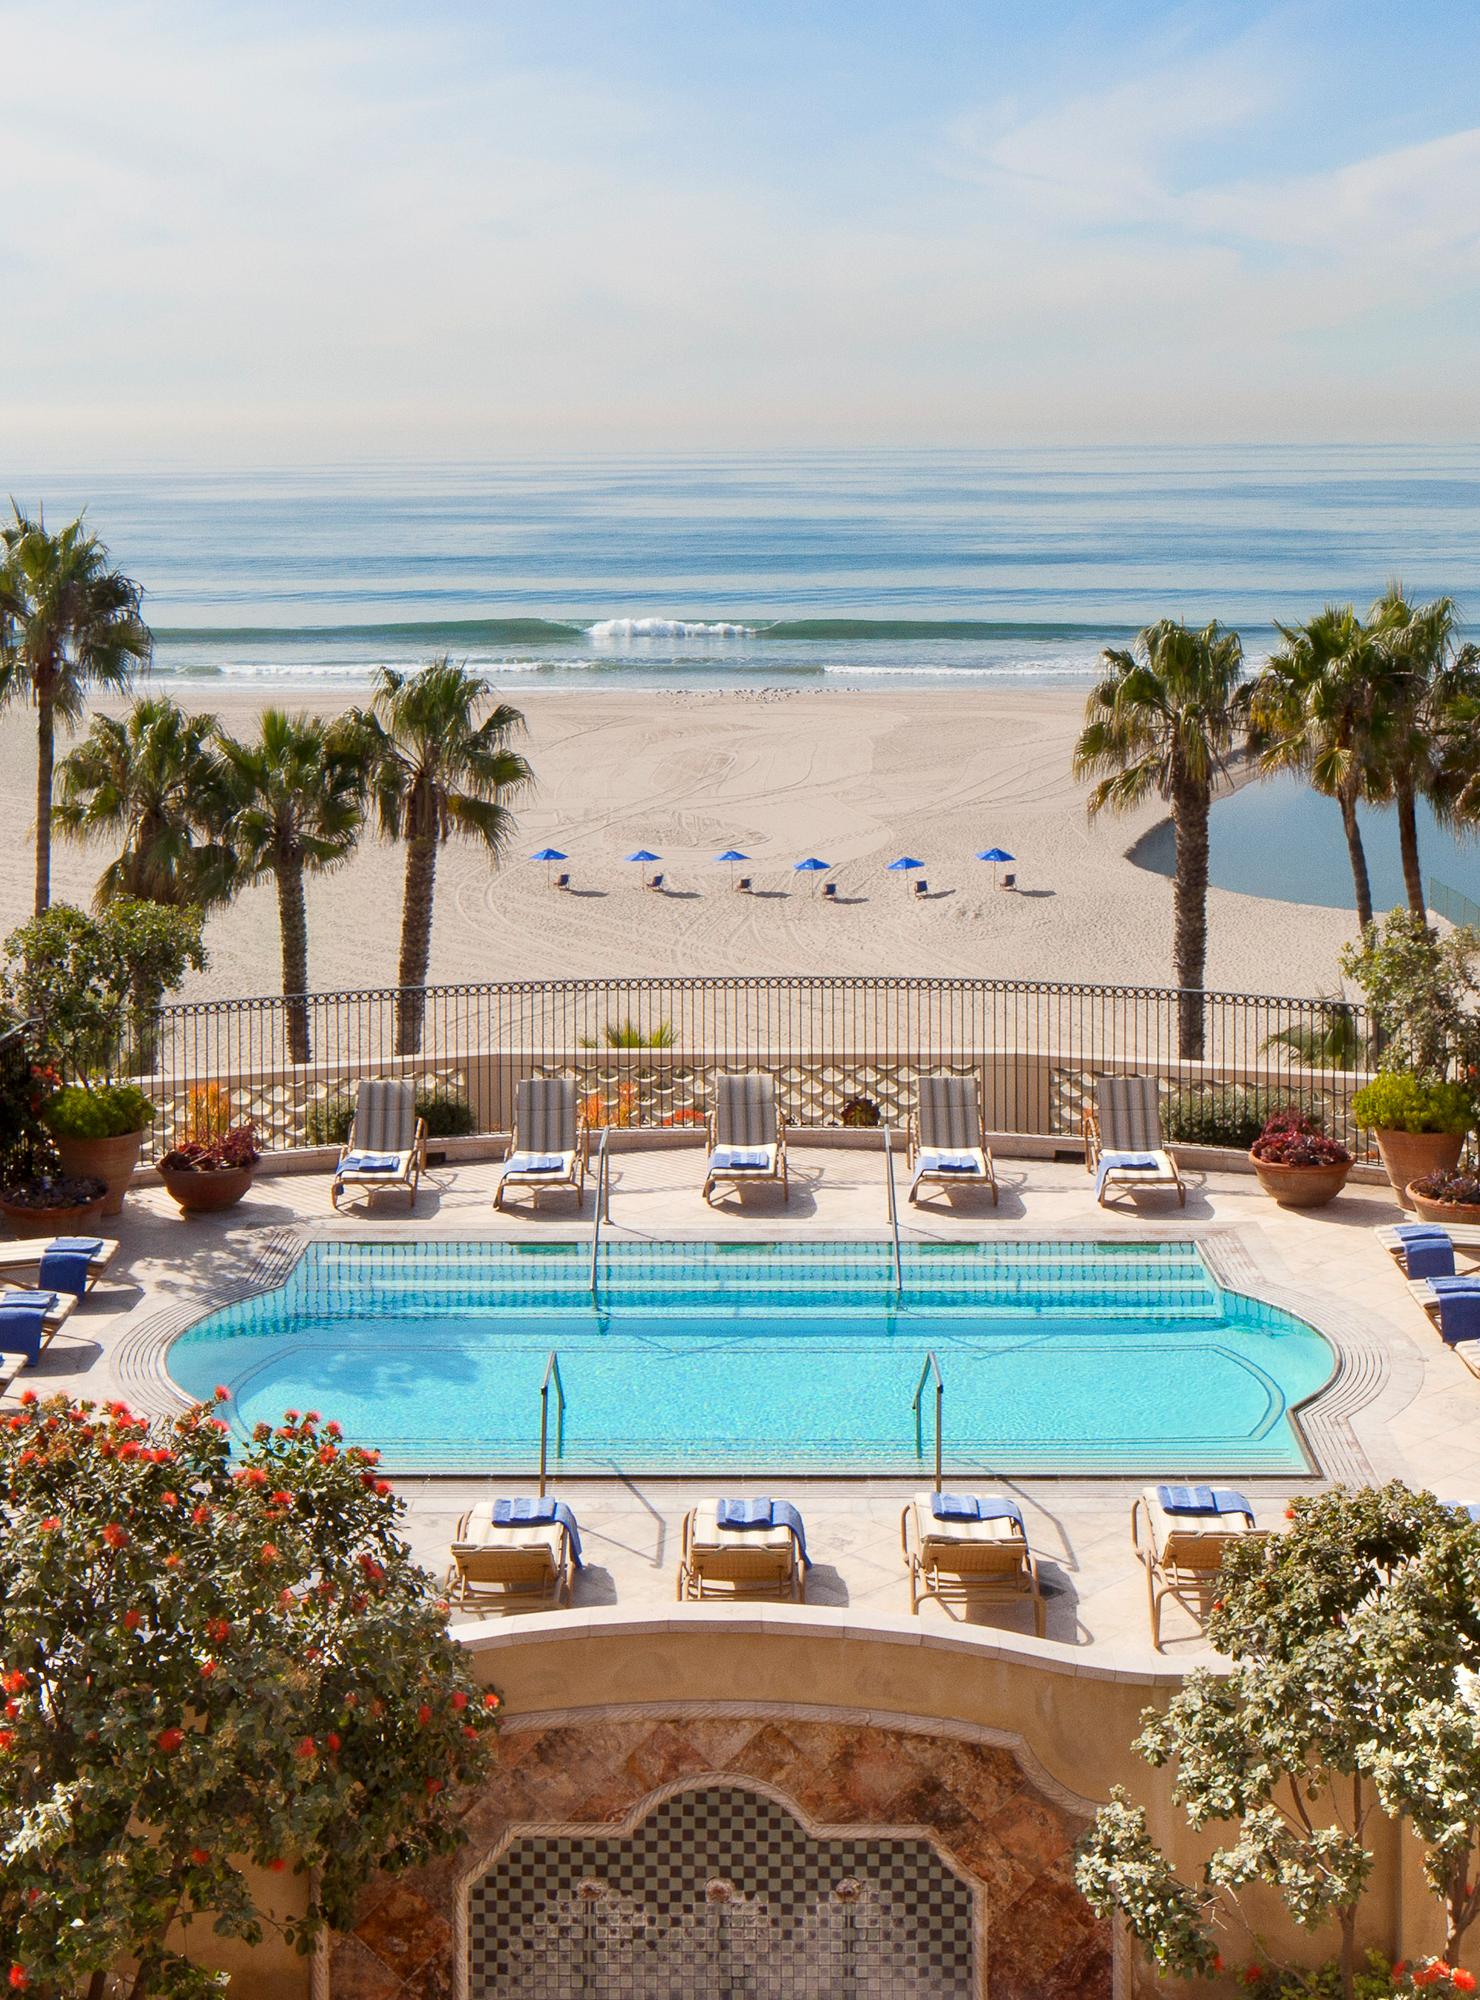 Win A Trip For Two To Santa Monica Get Airfare A Stay At Hotelcasadelmar More Http R29 Co 28j Los Angeles Hotels Santa Monica Hotels Top Luxury Hotels